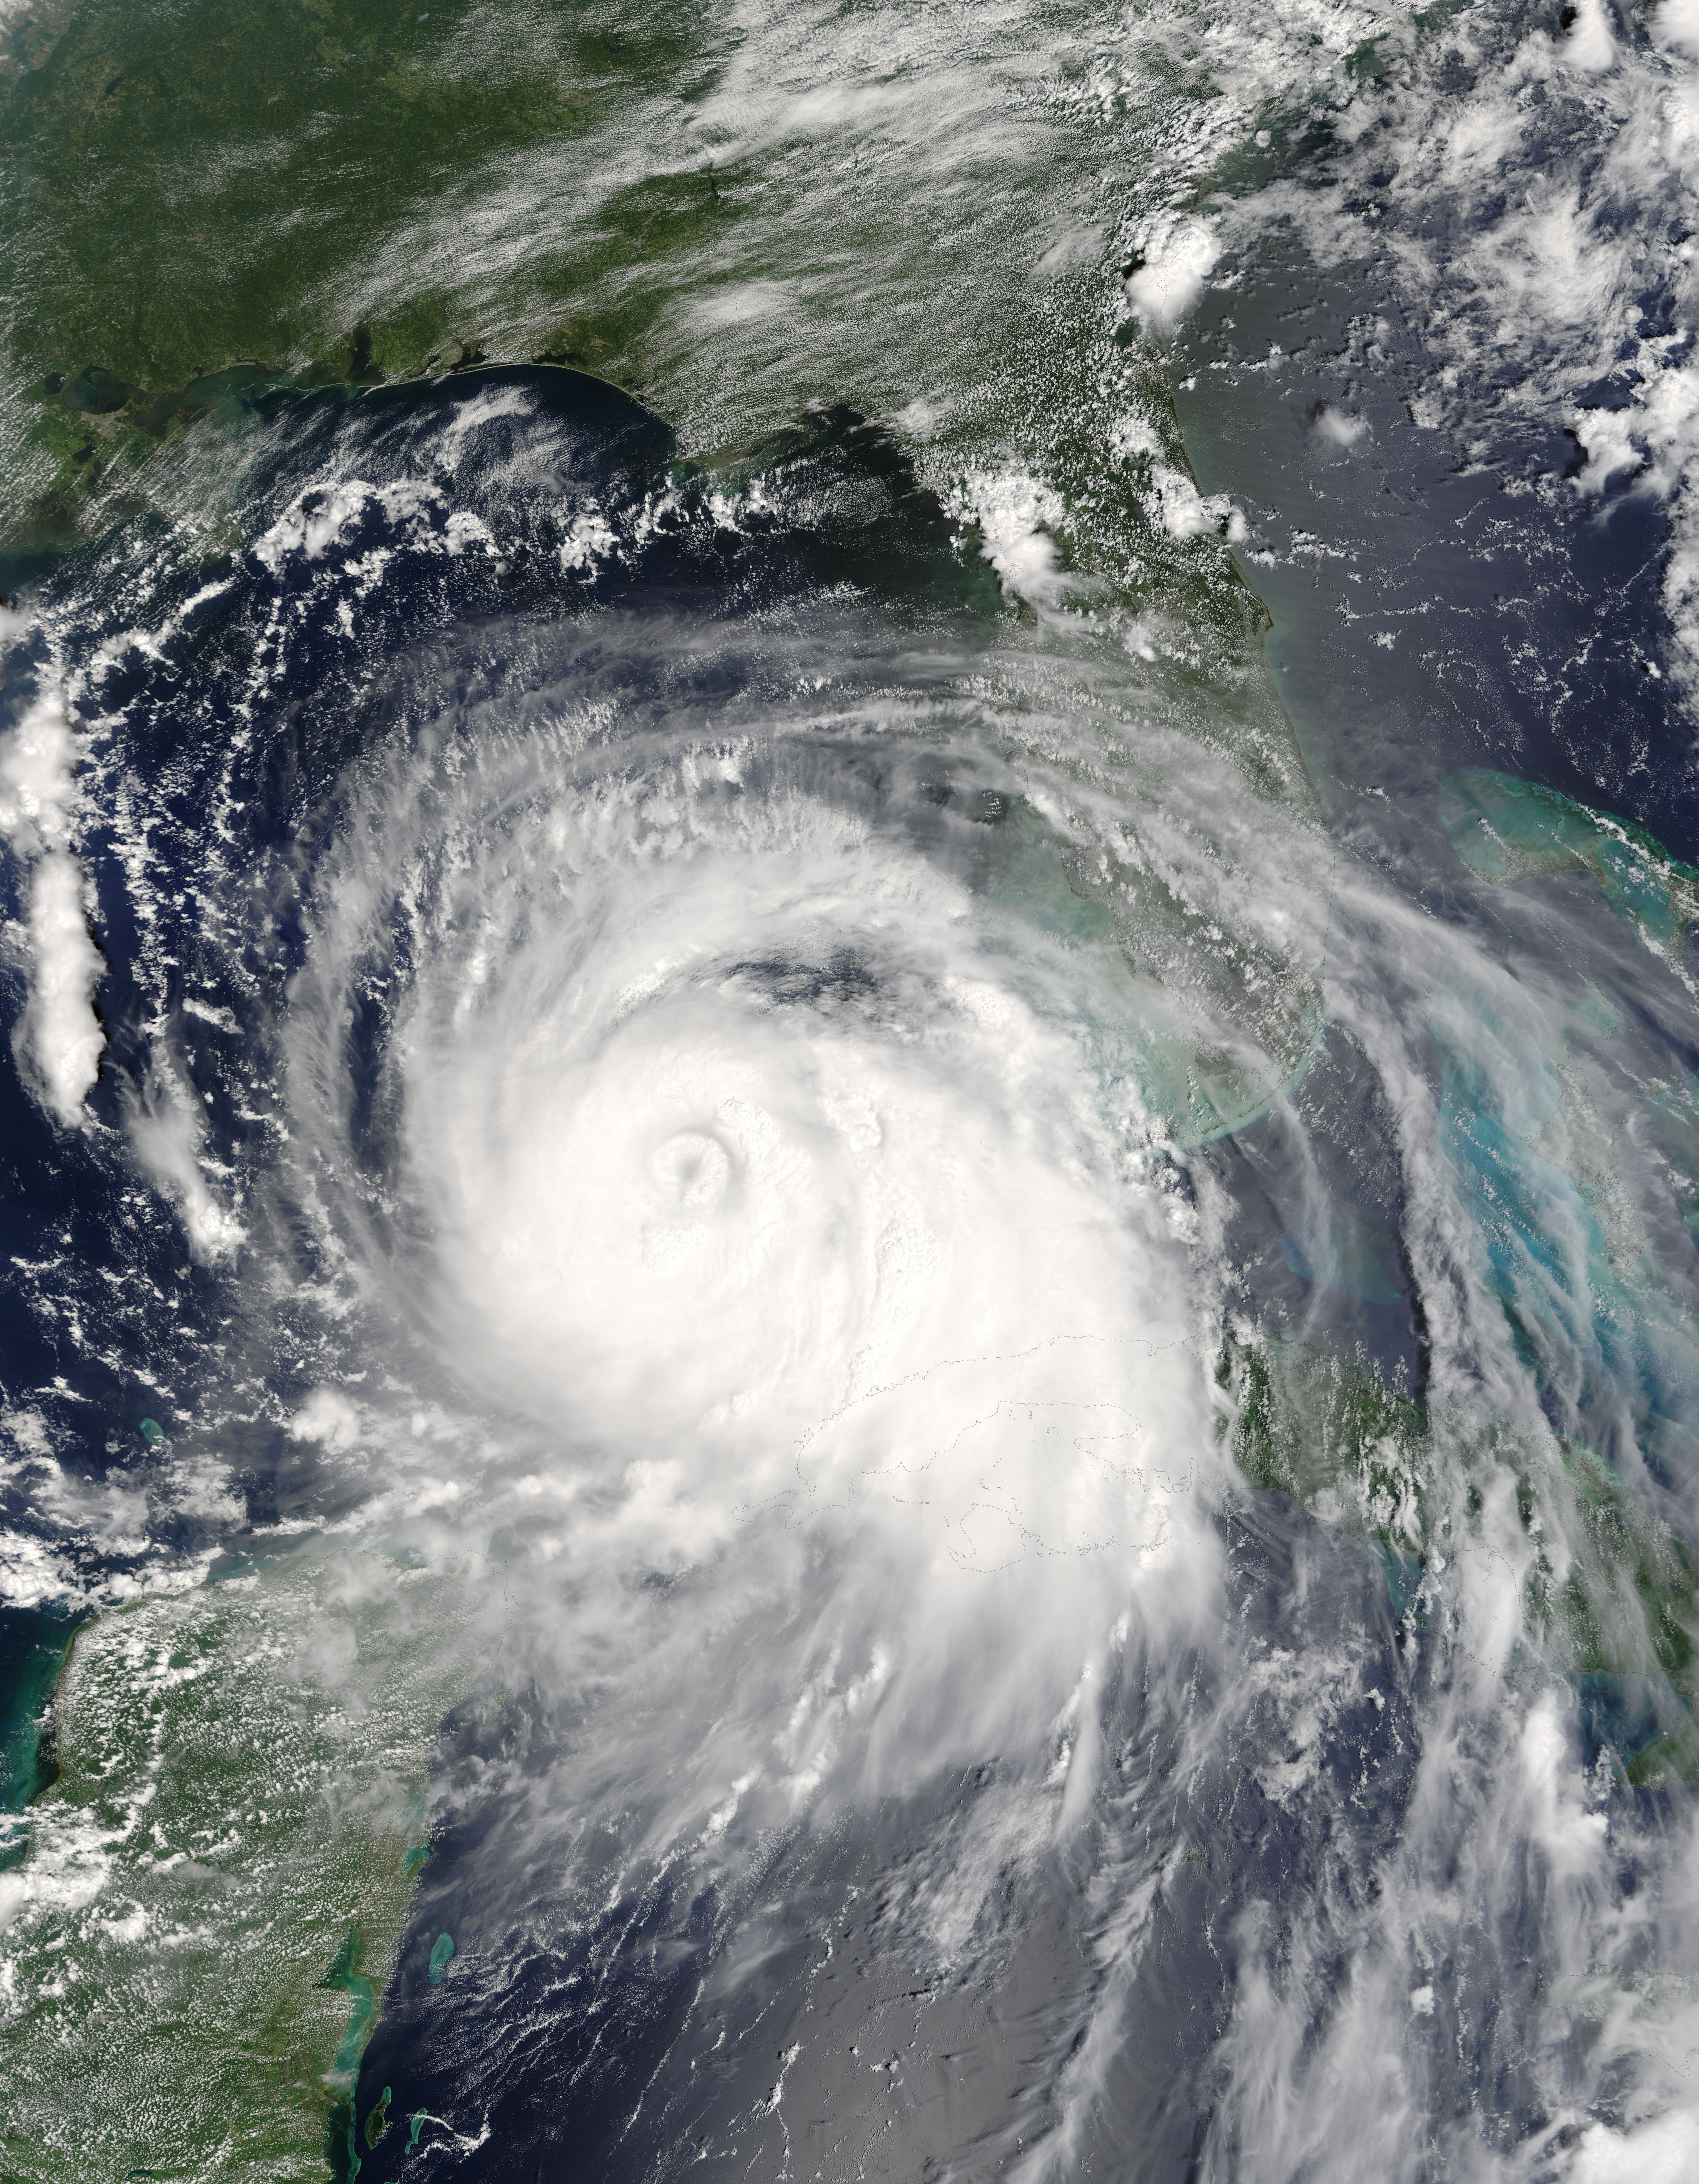 hurricane katrina was a man made and Ten years after hurricane katrina, we have not forgotten or forgiven the crime against humaniity that was perpetrated against the people.